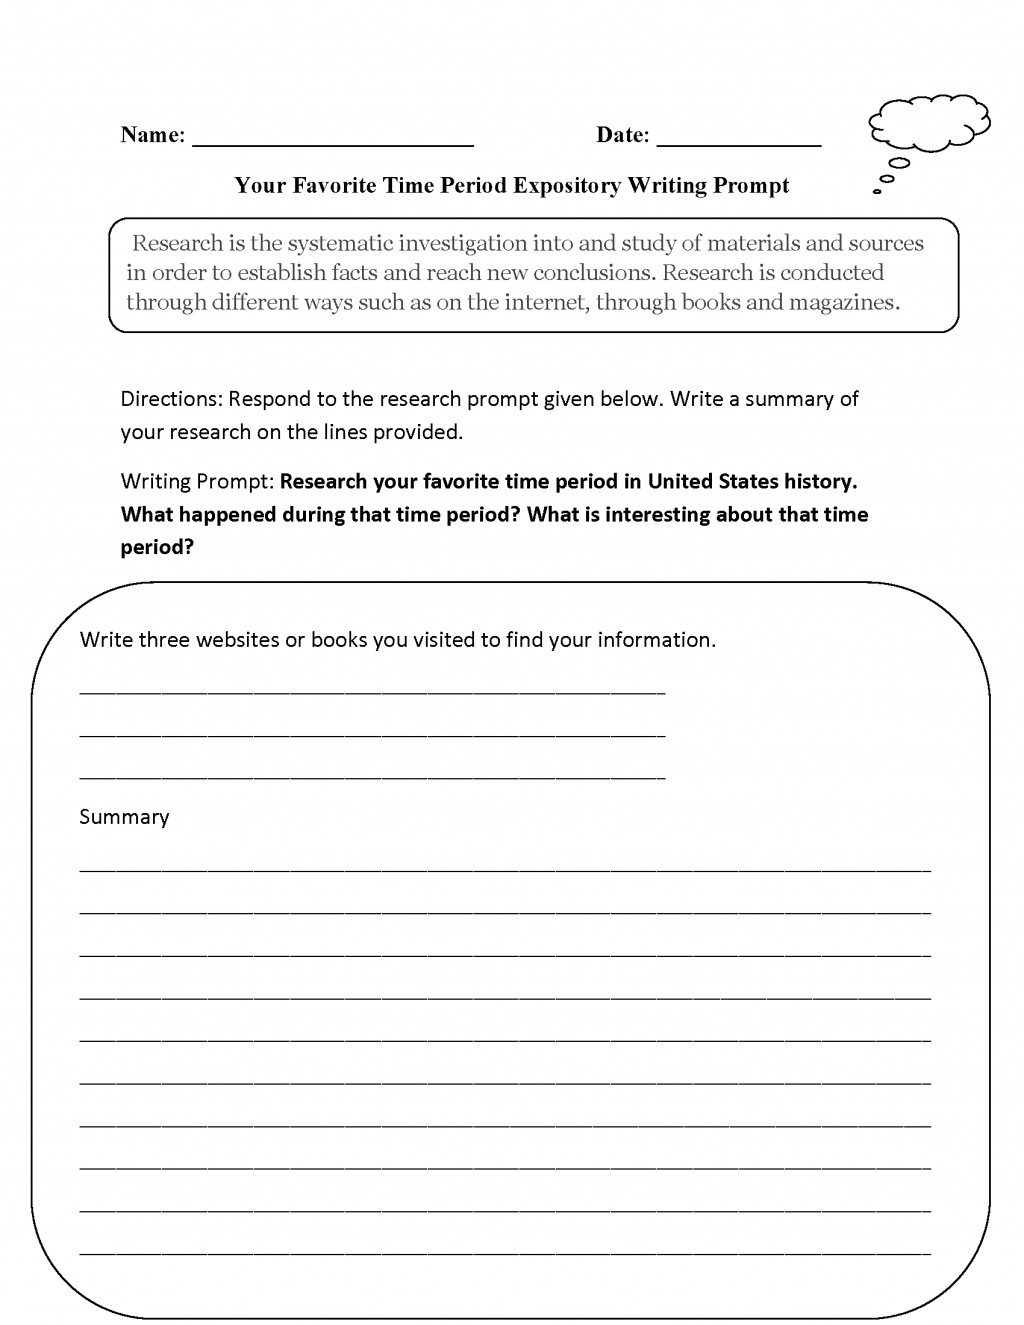 007 Essay Example Favorite Time Period Expository Writing Prompt Formidable Prompts Narrative For Middle School 5 Paragraph 5th Grade Large